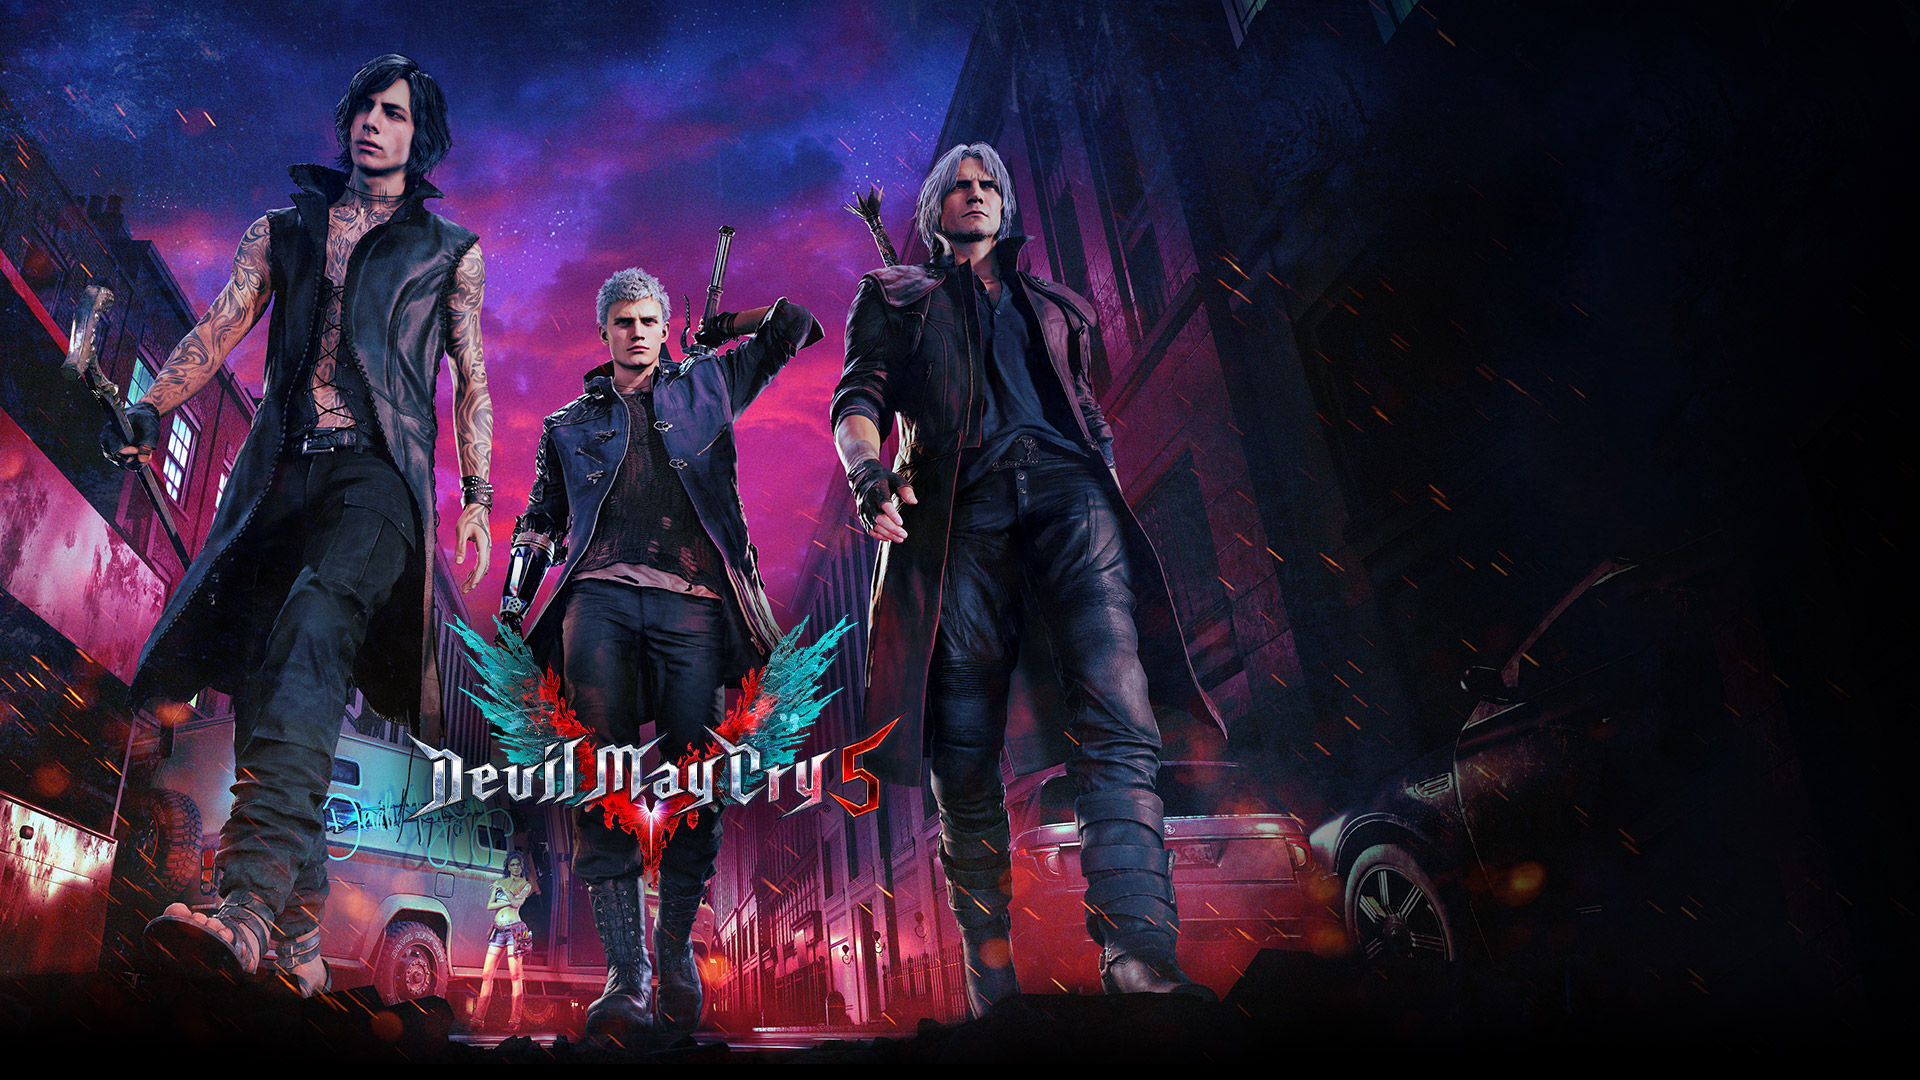 Devil May Cry 5, Demon hunters Nero, Dante and V walk down a street